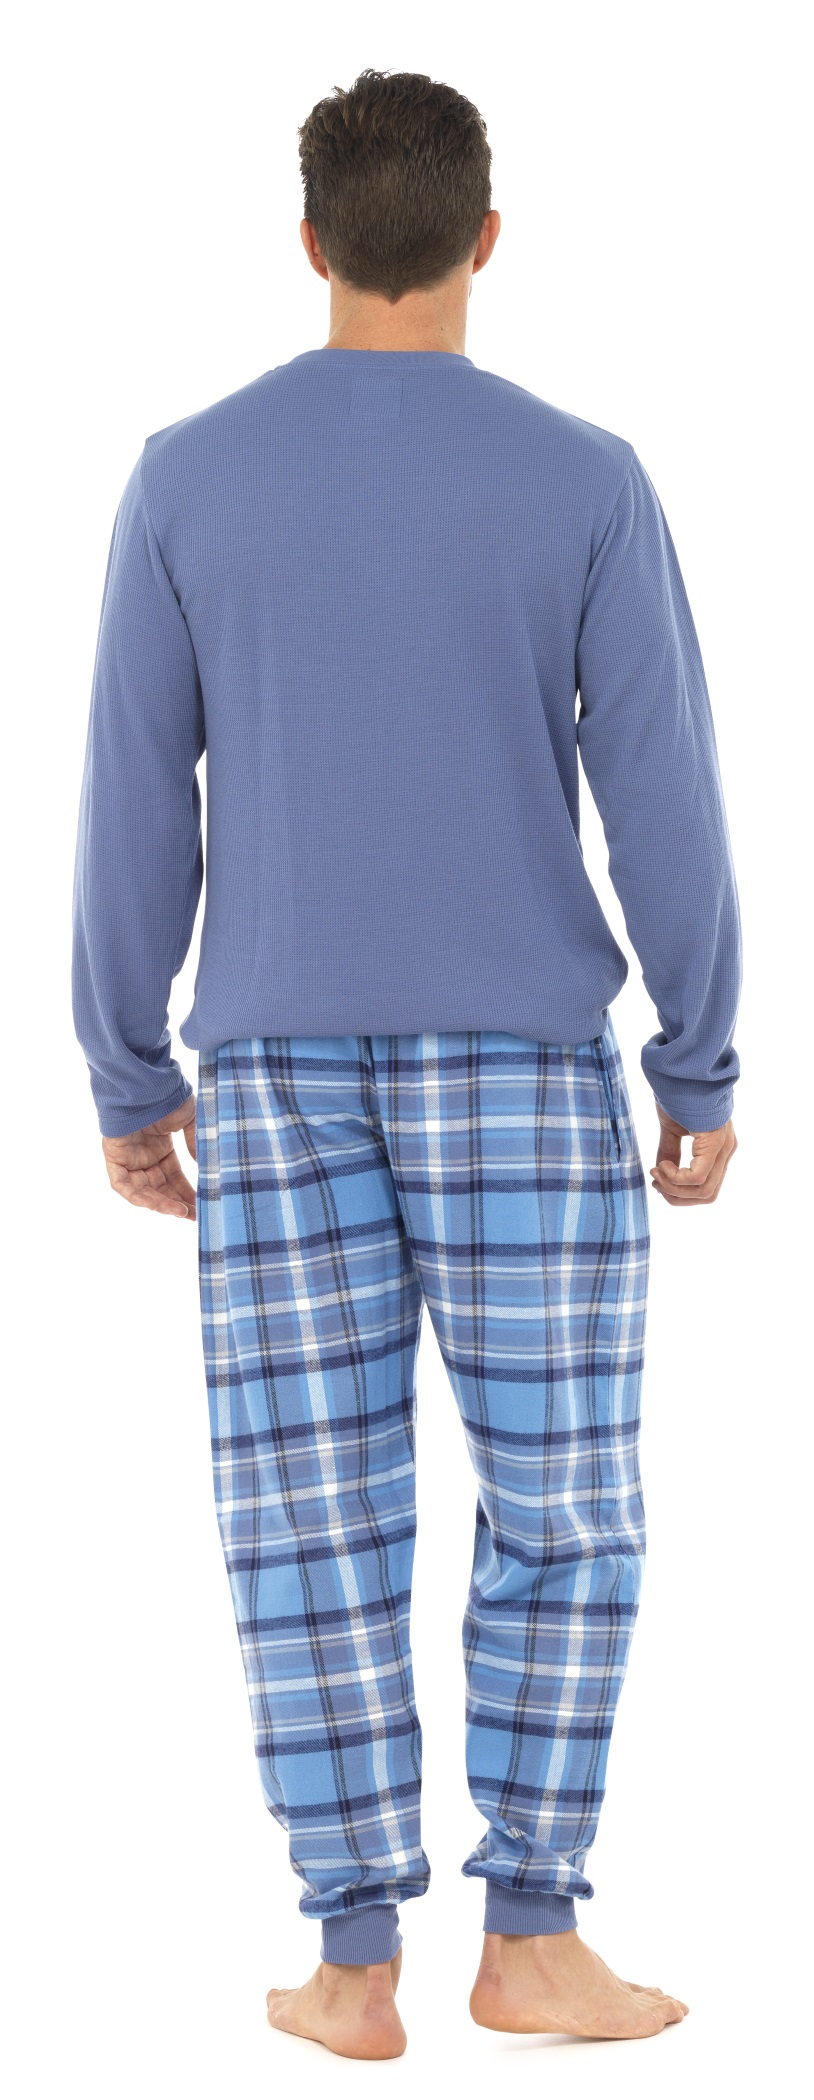 Shop Mmllse Pyjamas Pajama Sets Men's Long Sleeve Dressing Sleep Comfortable Long Sleeve Sleepwear Nighty Dress Homewear. Free delivery and returns on eligible orders.